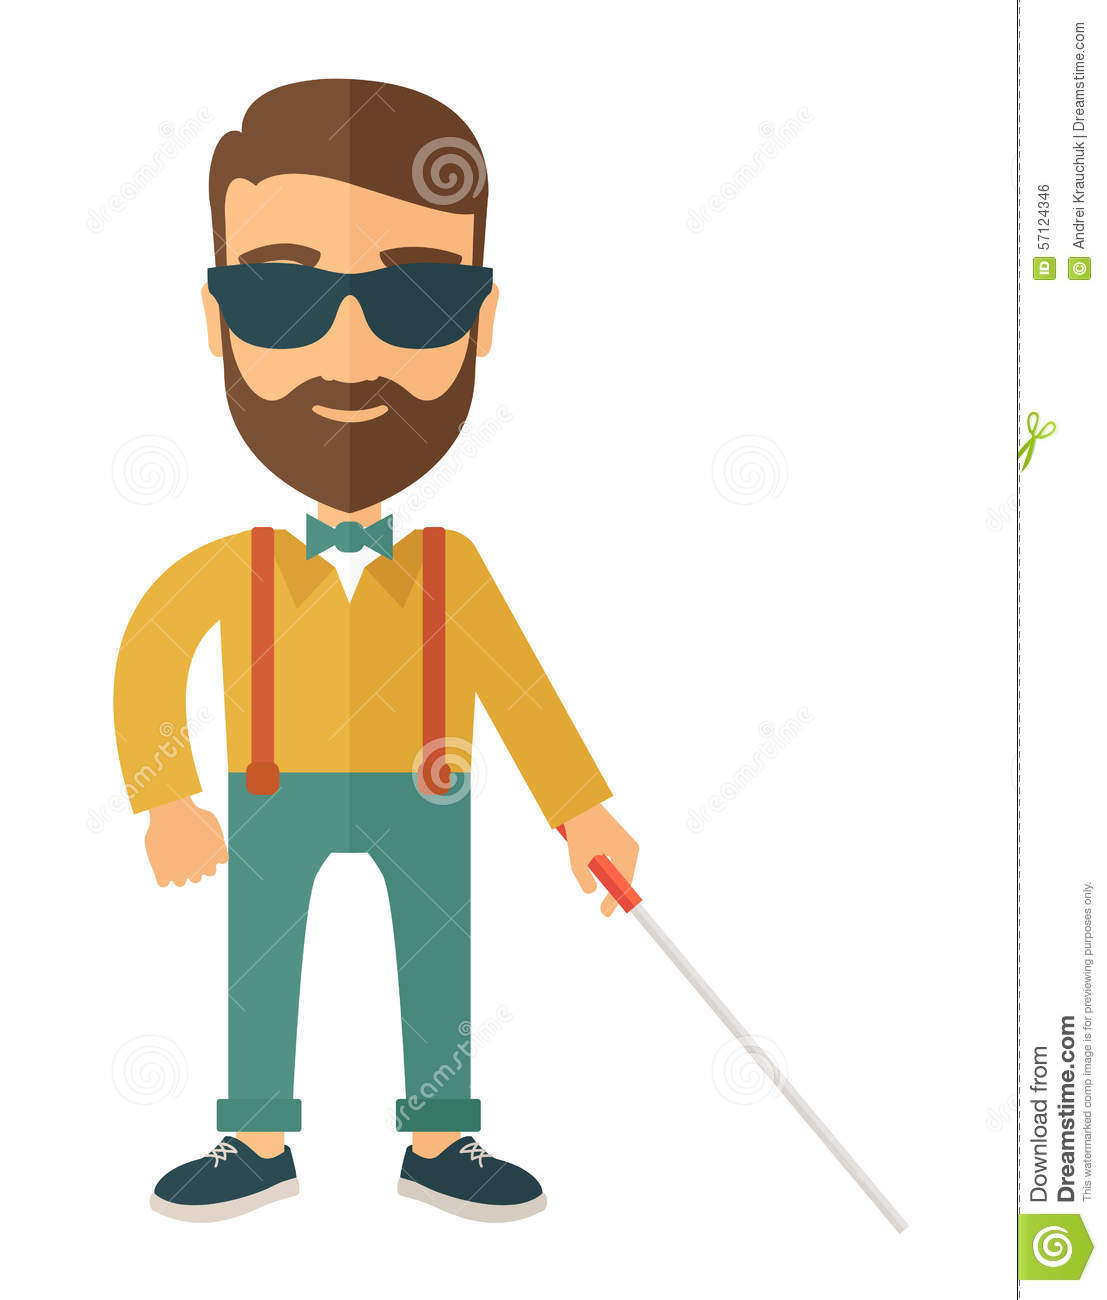 Stock Illustration Blind Man Walking Stick Caucasian Inside House Contemporary Style Vector Flat Design Illustration Isolated White Image57124346 on house plans layout design